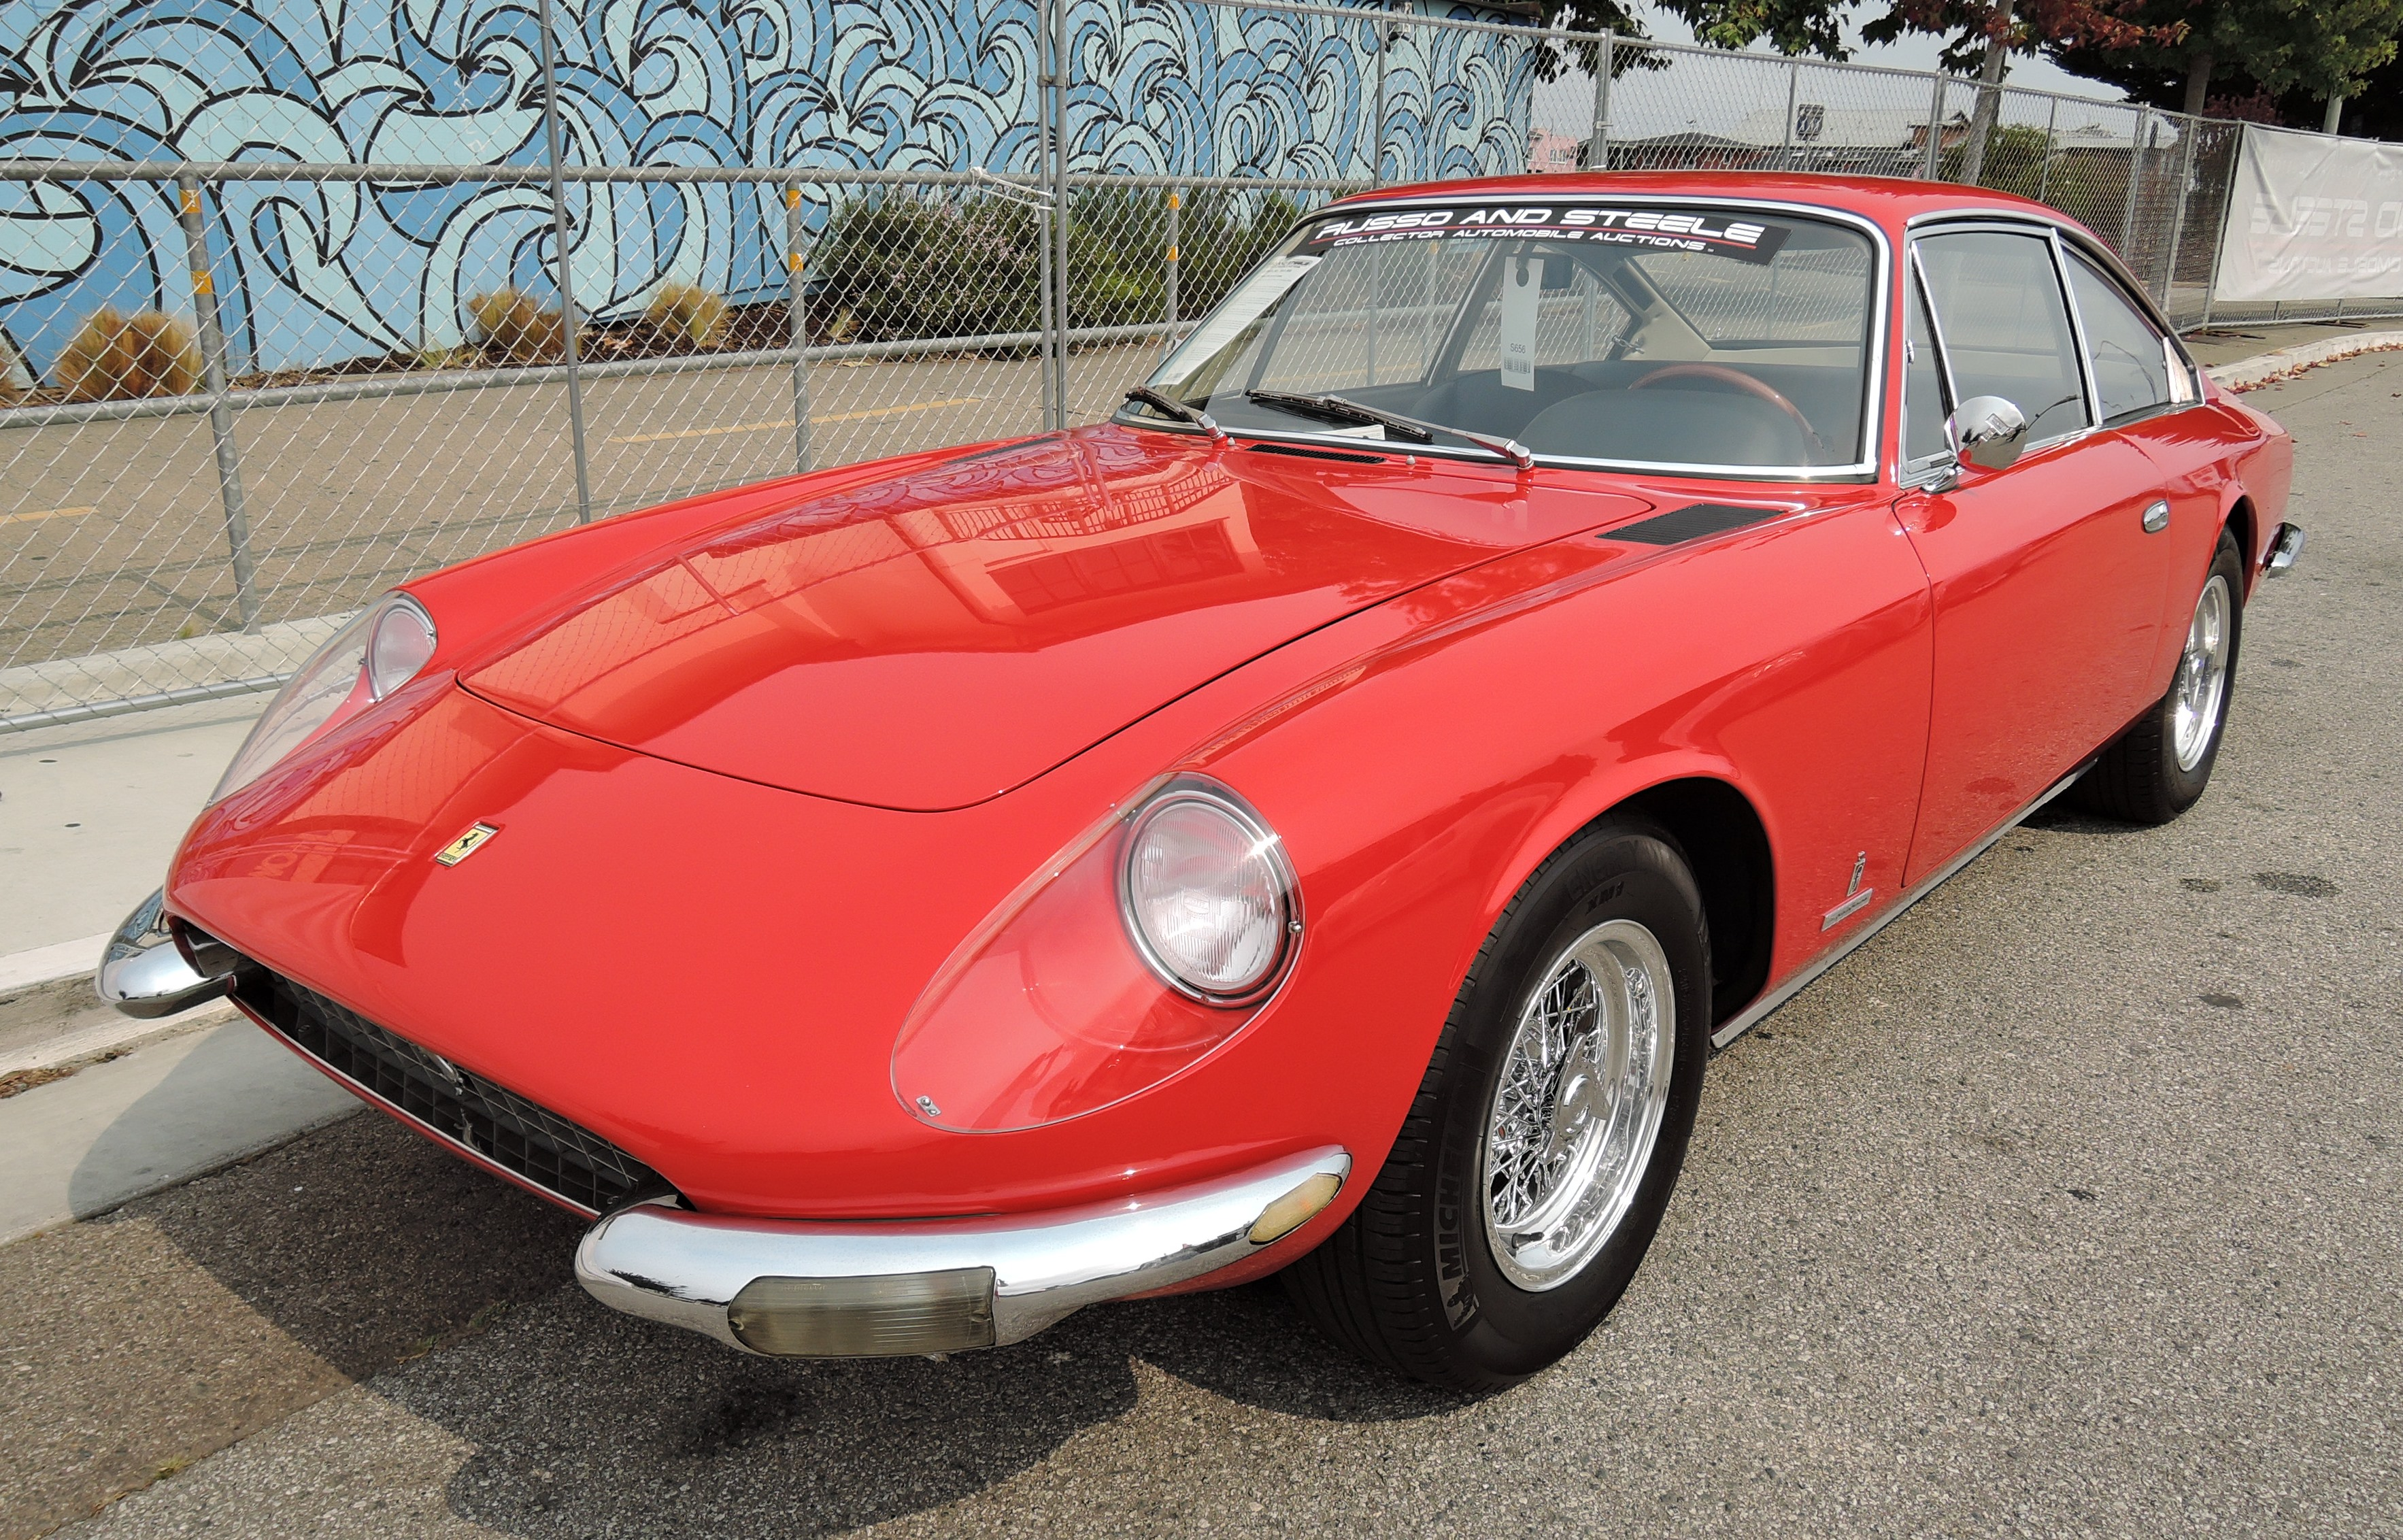 red 1967 Ferrari 365 2+2 - Monterey auctions Russo & Steele